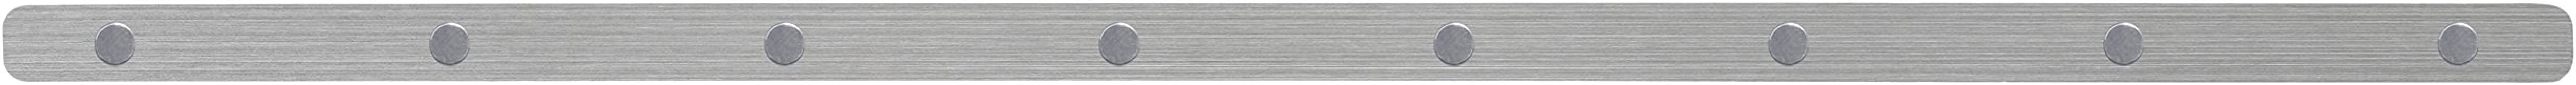 Three By Three Seattle Magnetic Skinny Strip, Stainless, 24